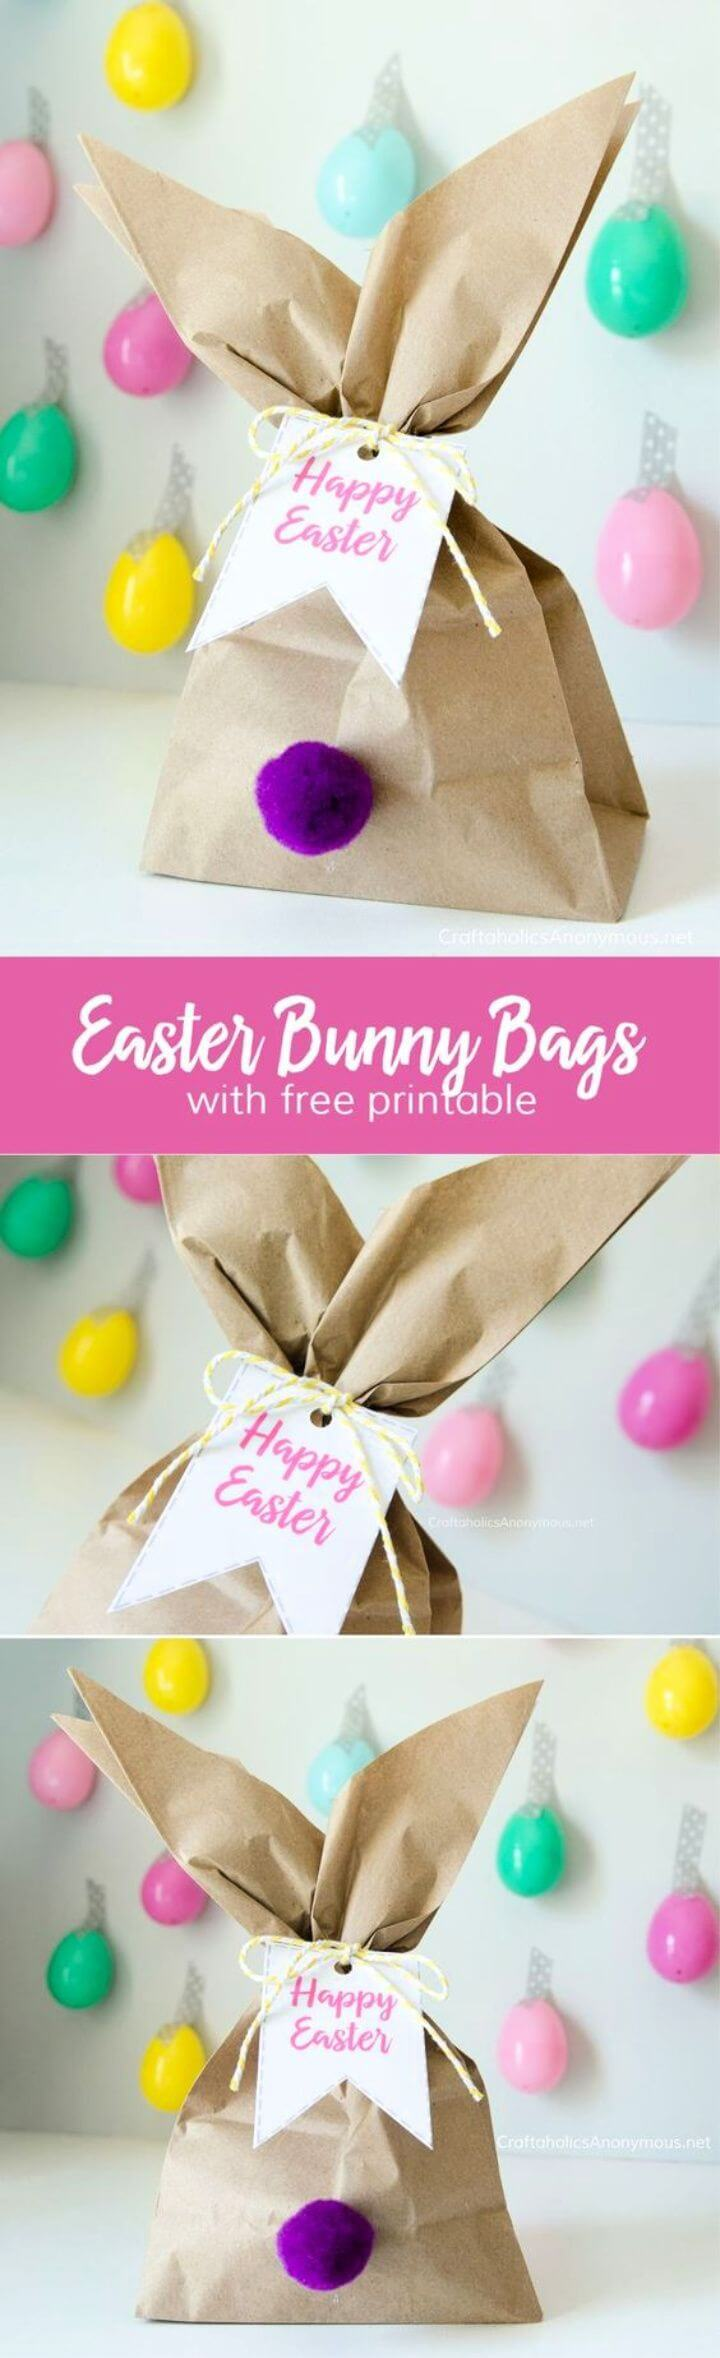 DIY Easter Bunny Gift Bags with Free Printable Tags